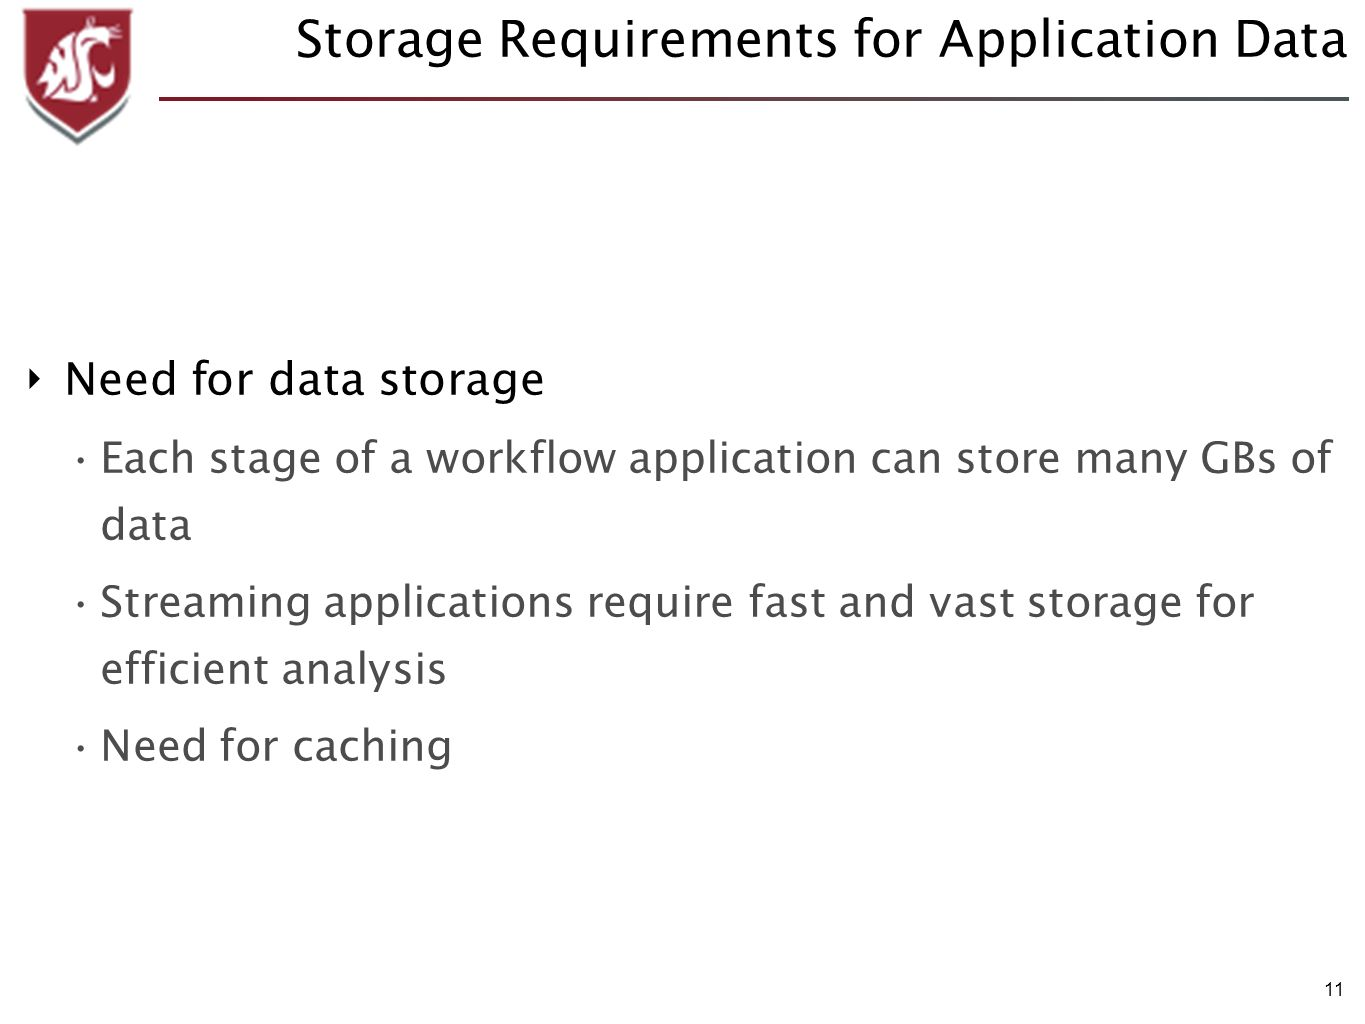 11 Storage Requirements for Application Data Need for data storage Each stage of a workflow application can store many GBs of data Streaming applications require fast and vast storage for efficient analysis Need for caching